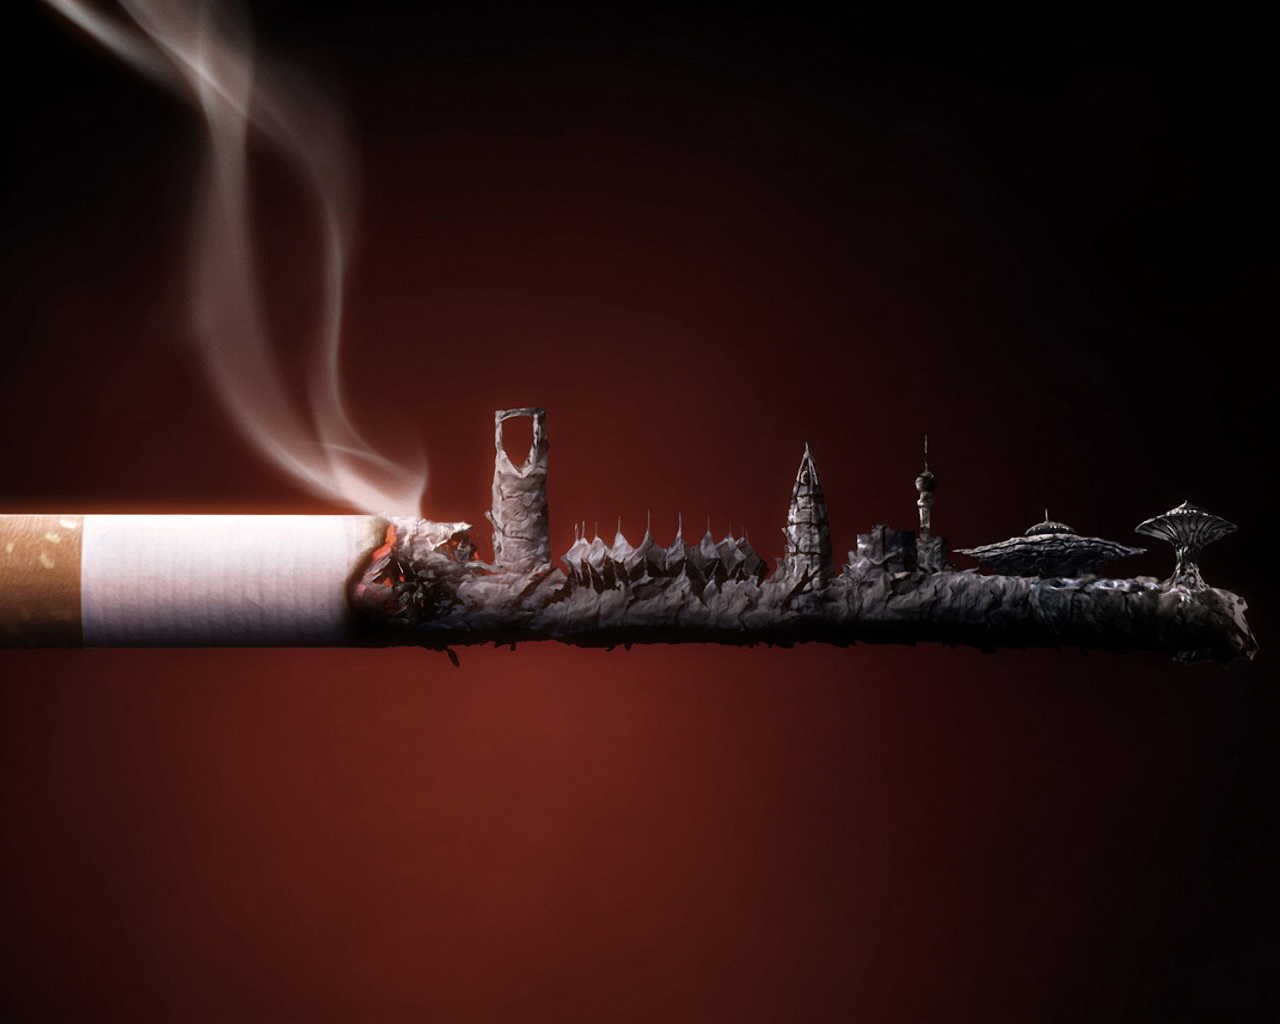 Image Smoked Cigarette Wallpapers And Stock Photos